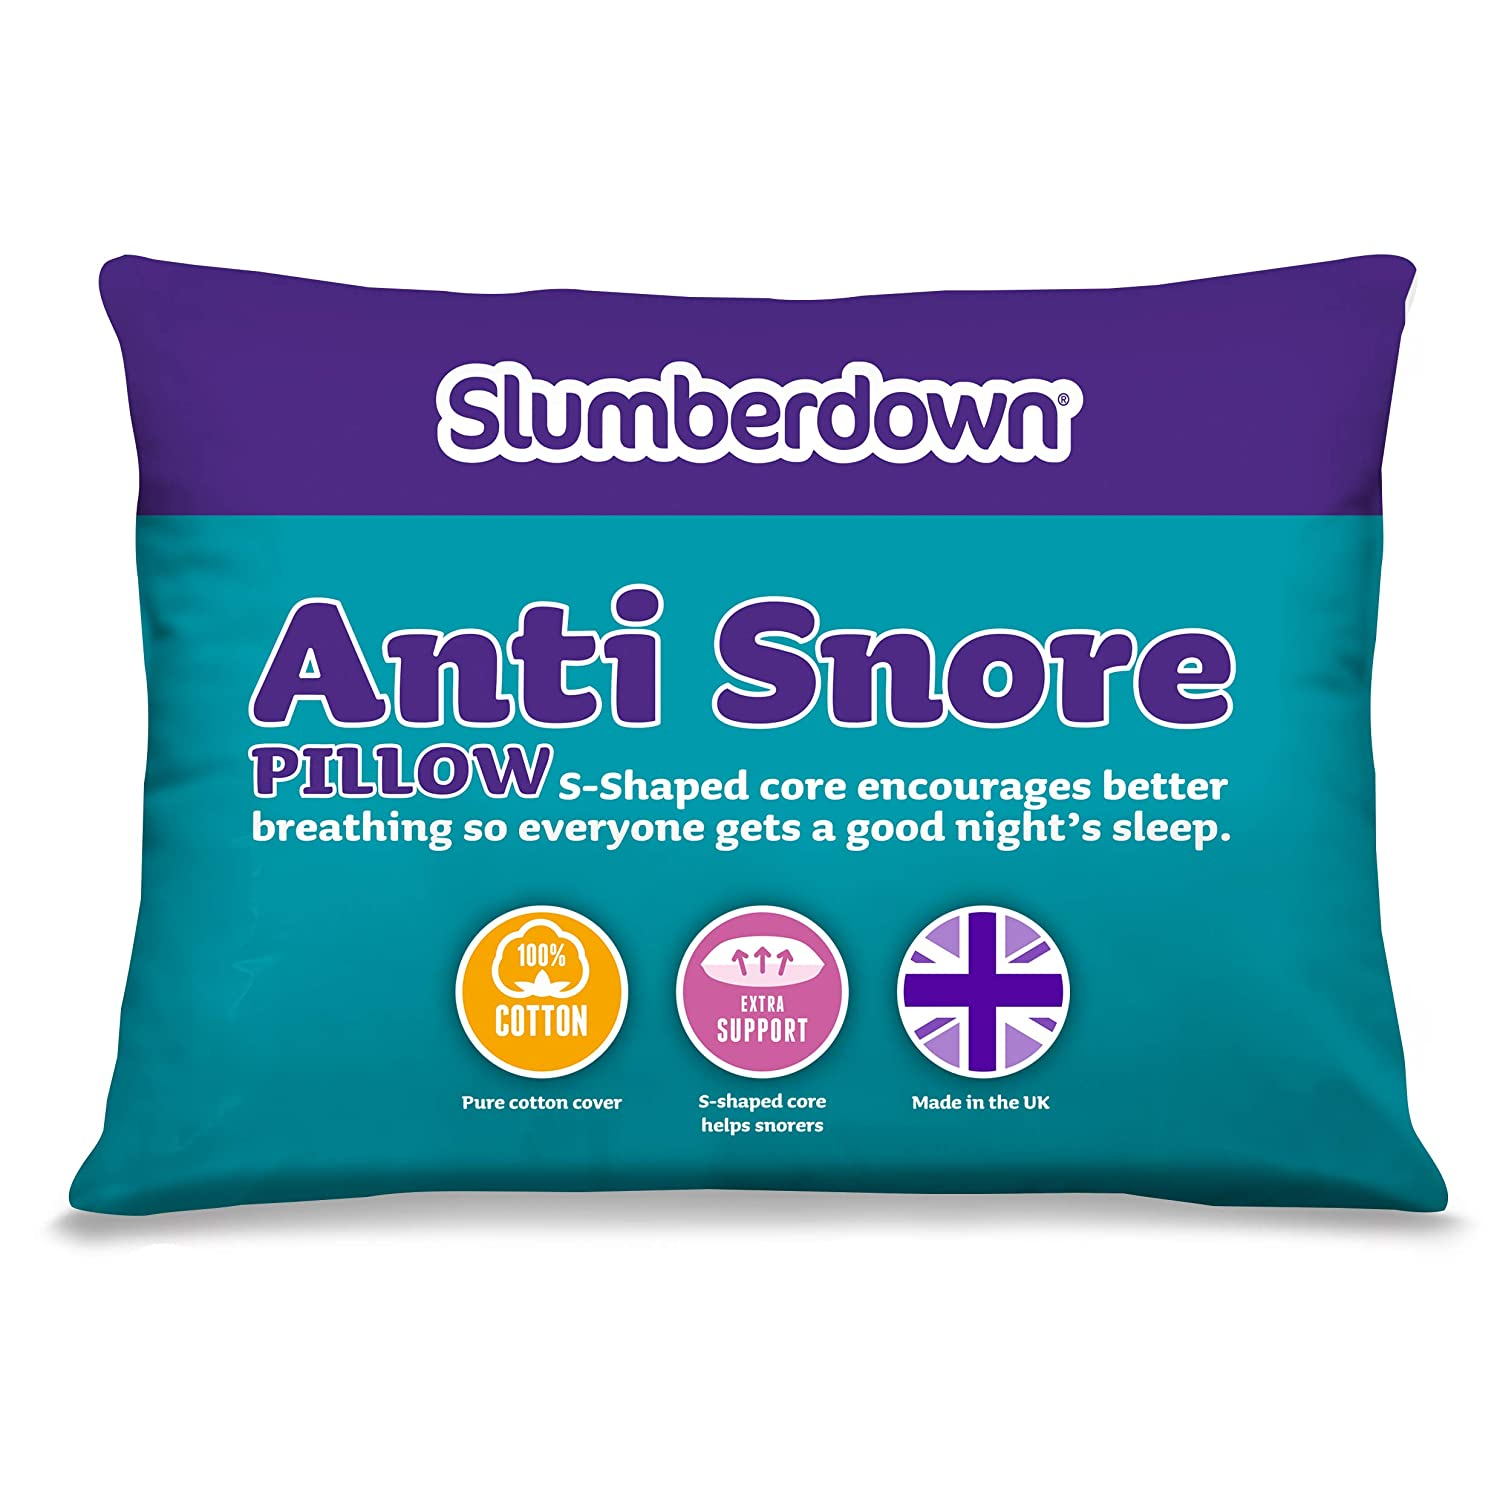 Slumberdown Anti-Snore Pillow, White 4033AMZ77